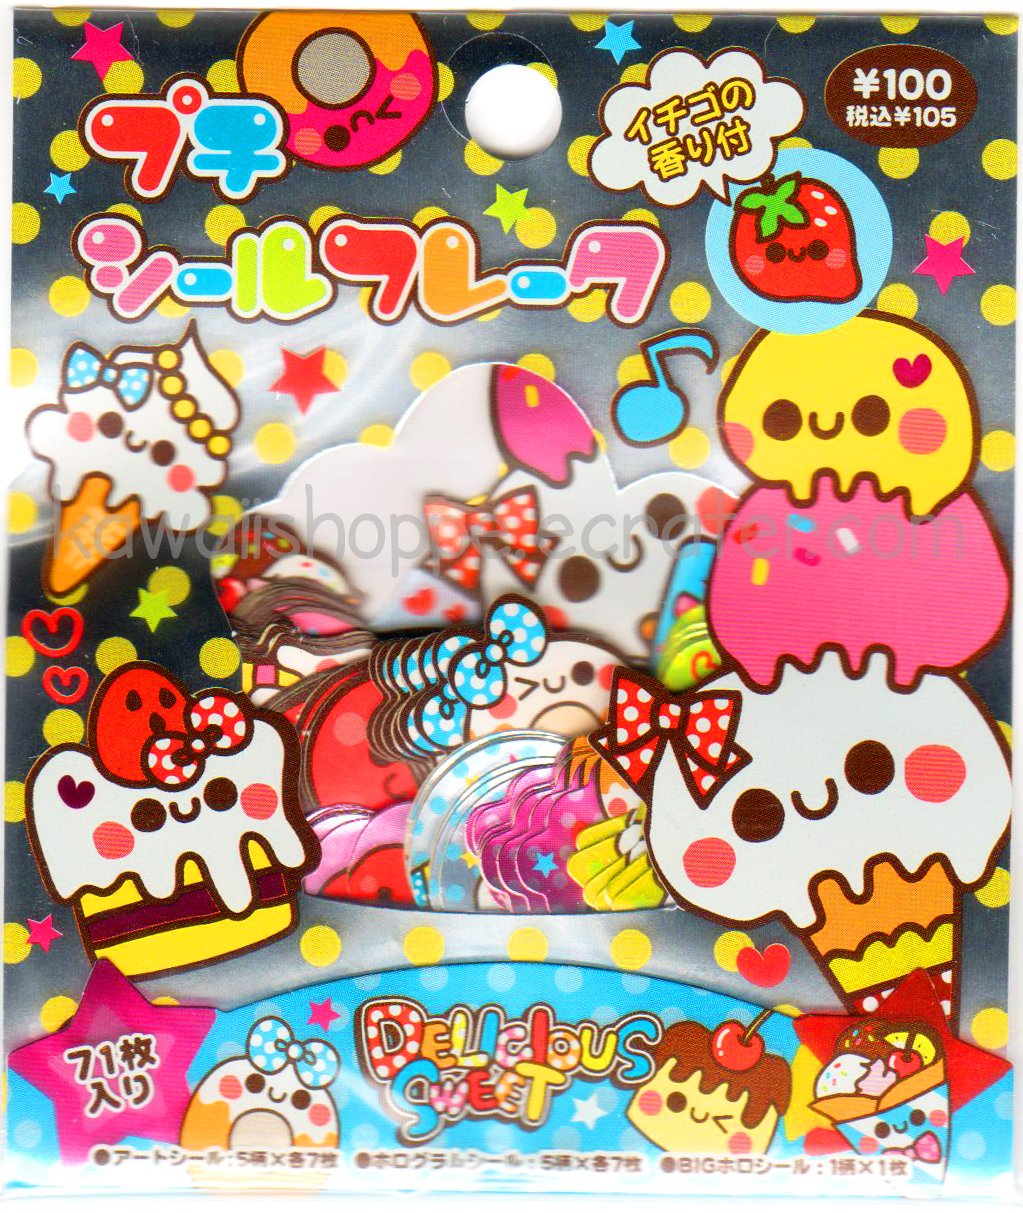 Kamio Japan Delicious Sweets Sticker Sack - RARE! Hard to find! Ice Cream Desserts Stickers Kawaii